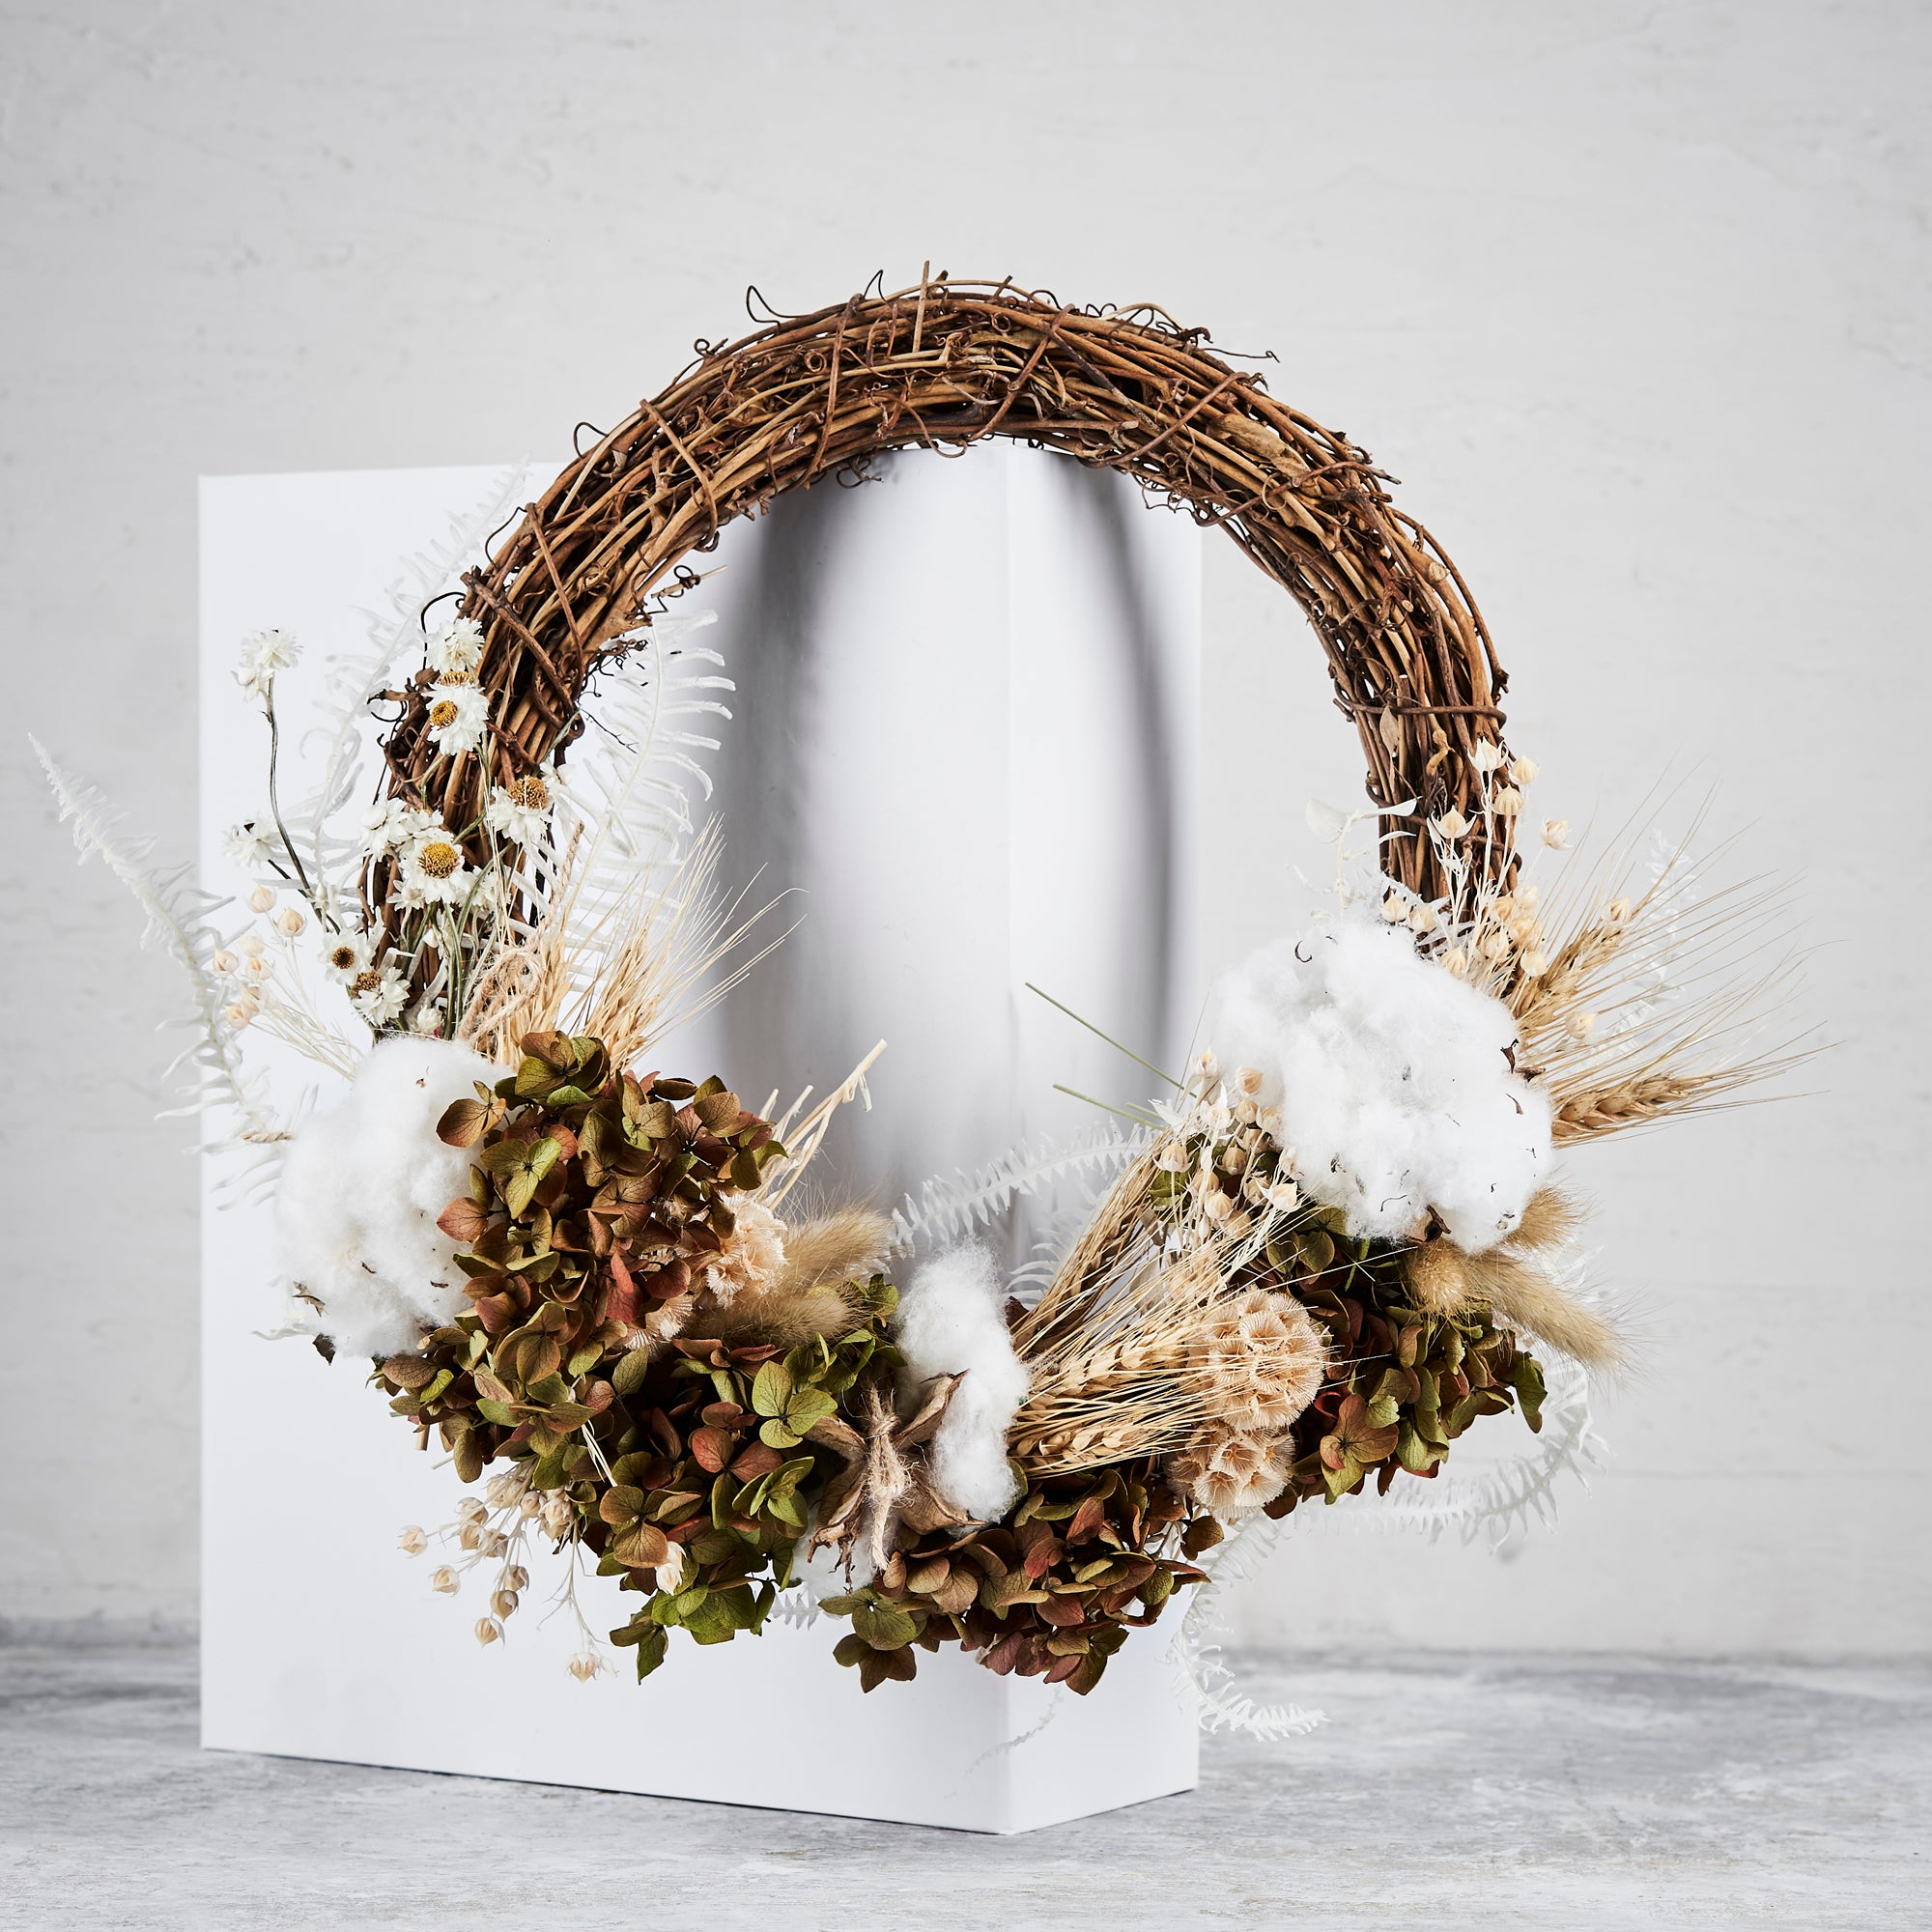 Cotton Wreath Pre-order